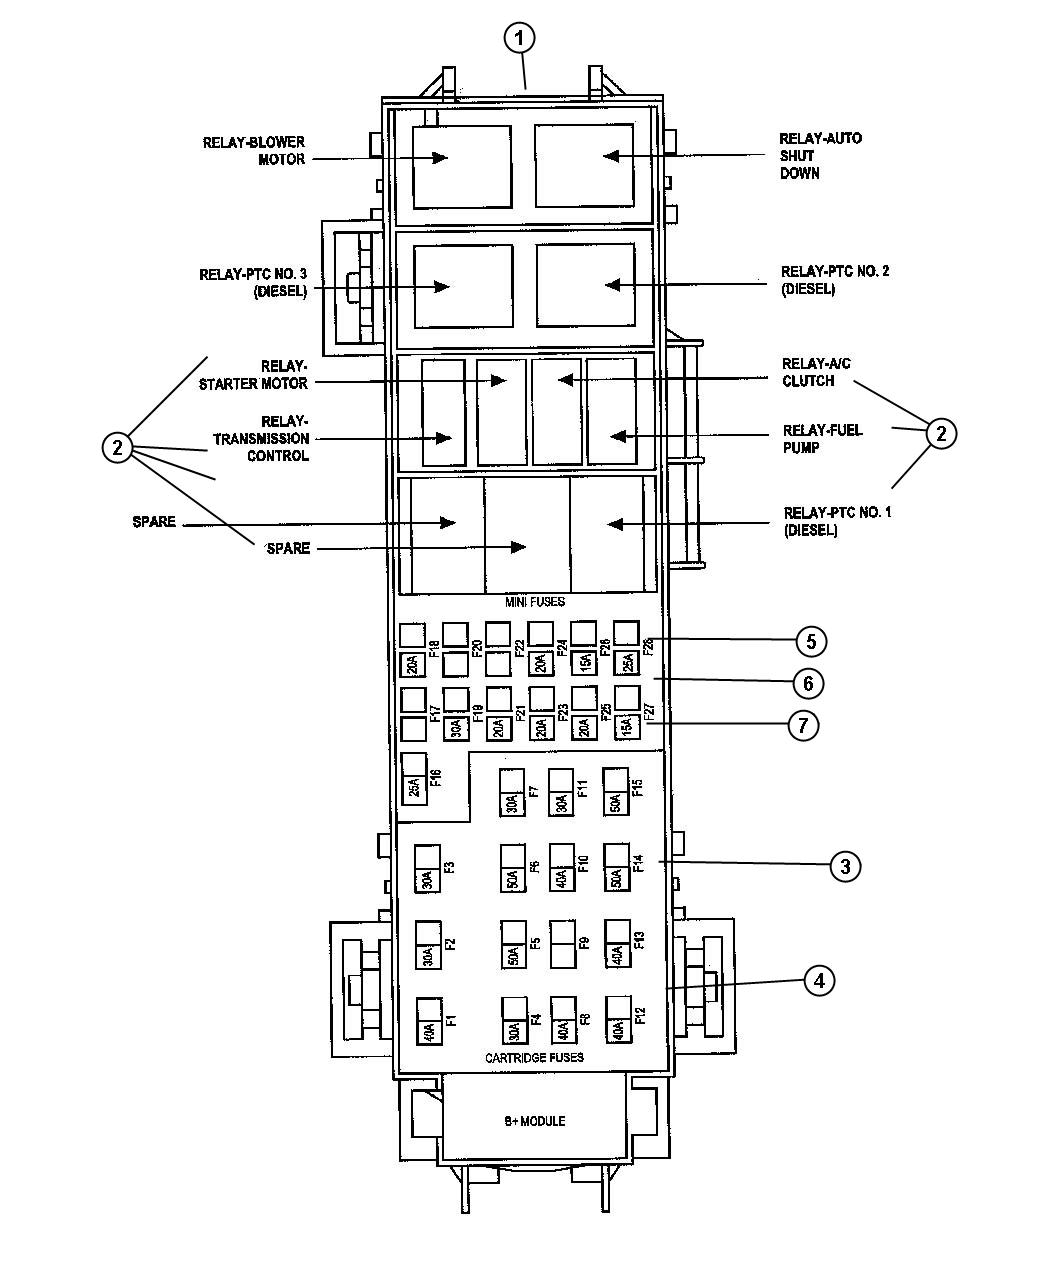 Jeep Commander Relay Diagram, Jeep, Free Engine Image For